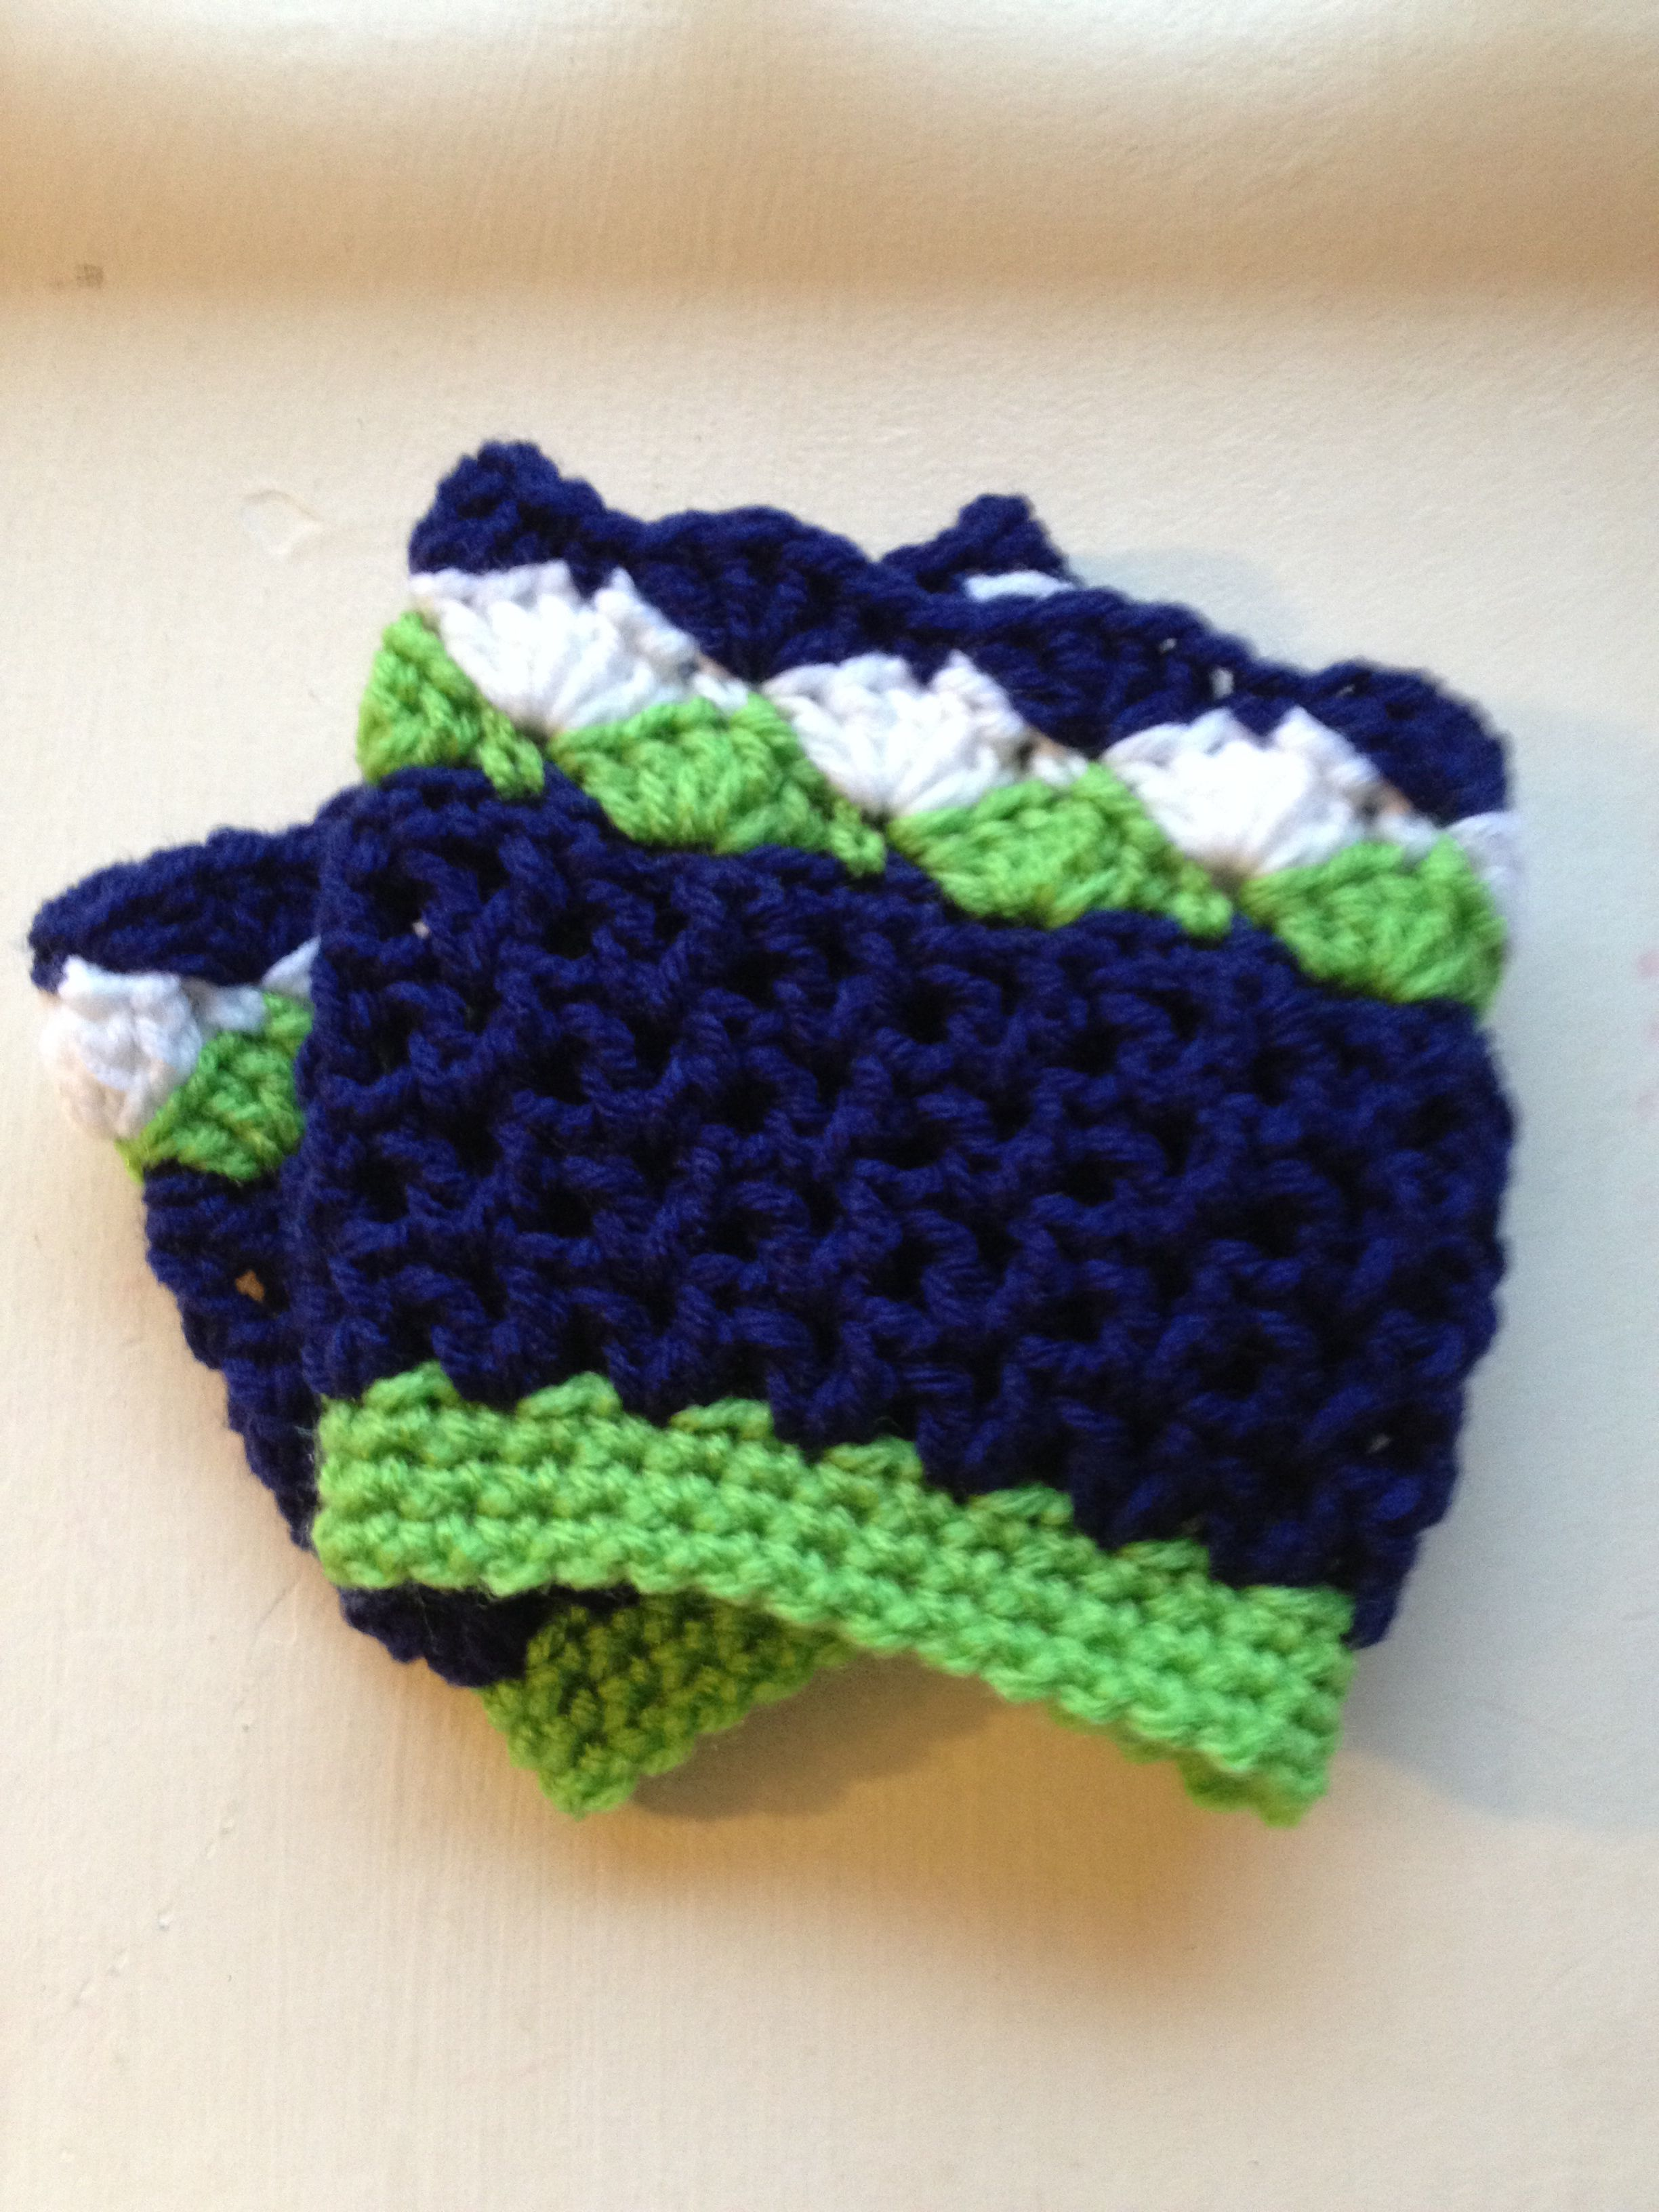 Crochet seahawks boot cuffs. | Craft ideas | Pinterest